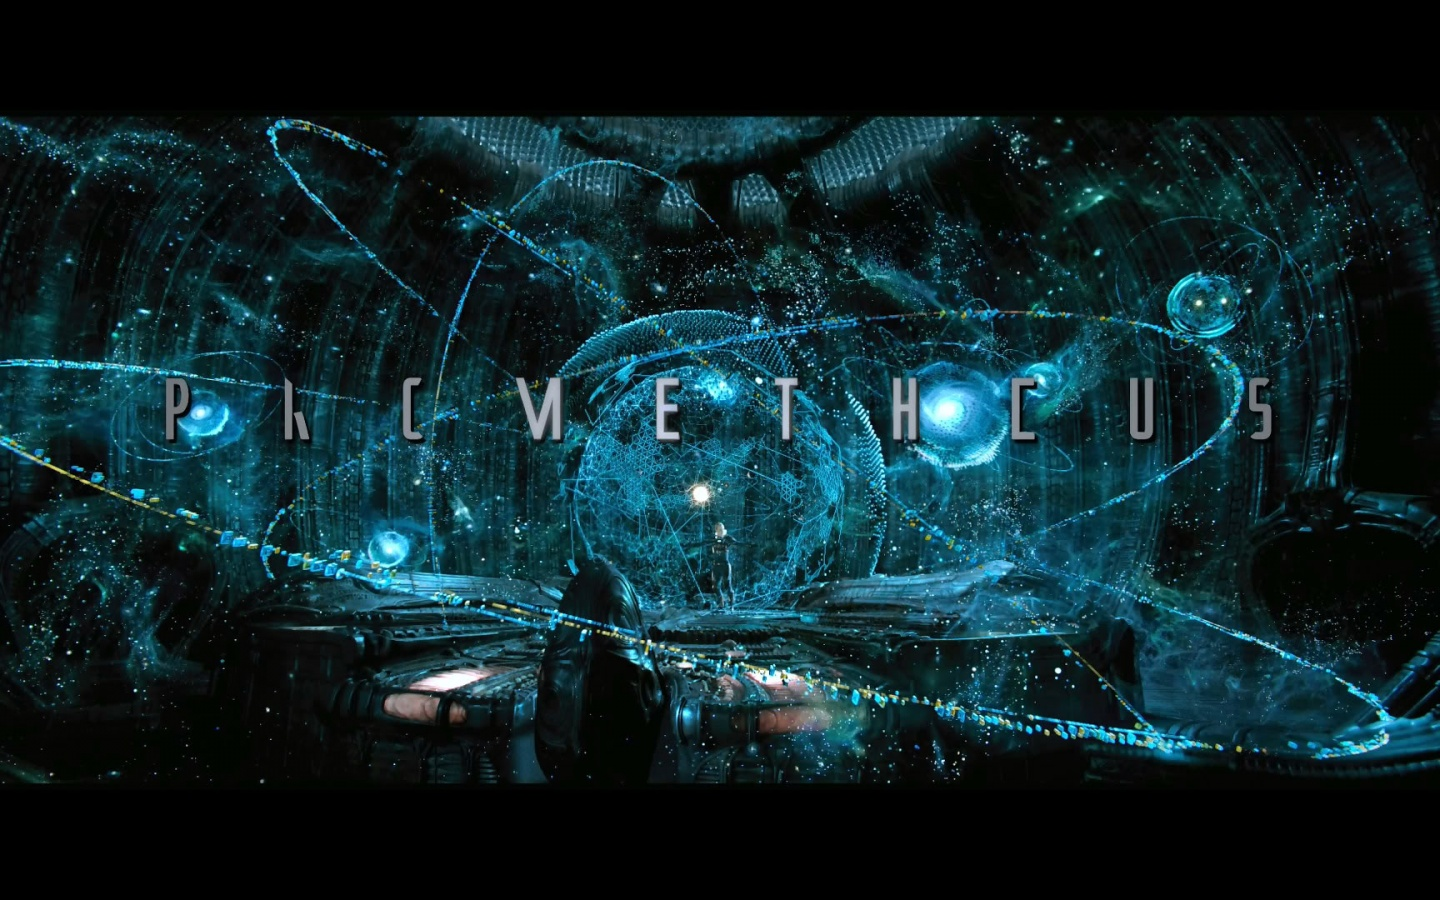 1440x900 Prometheus, high